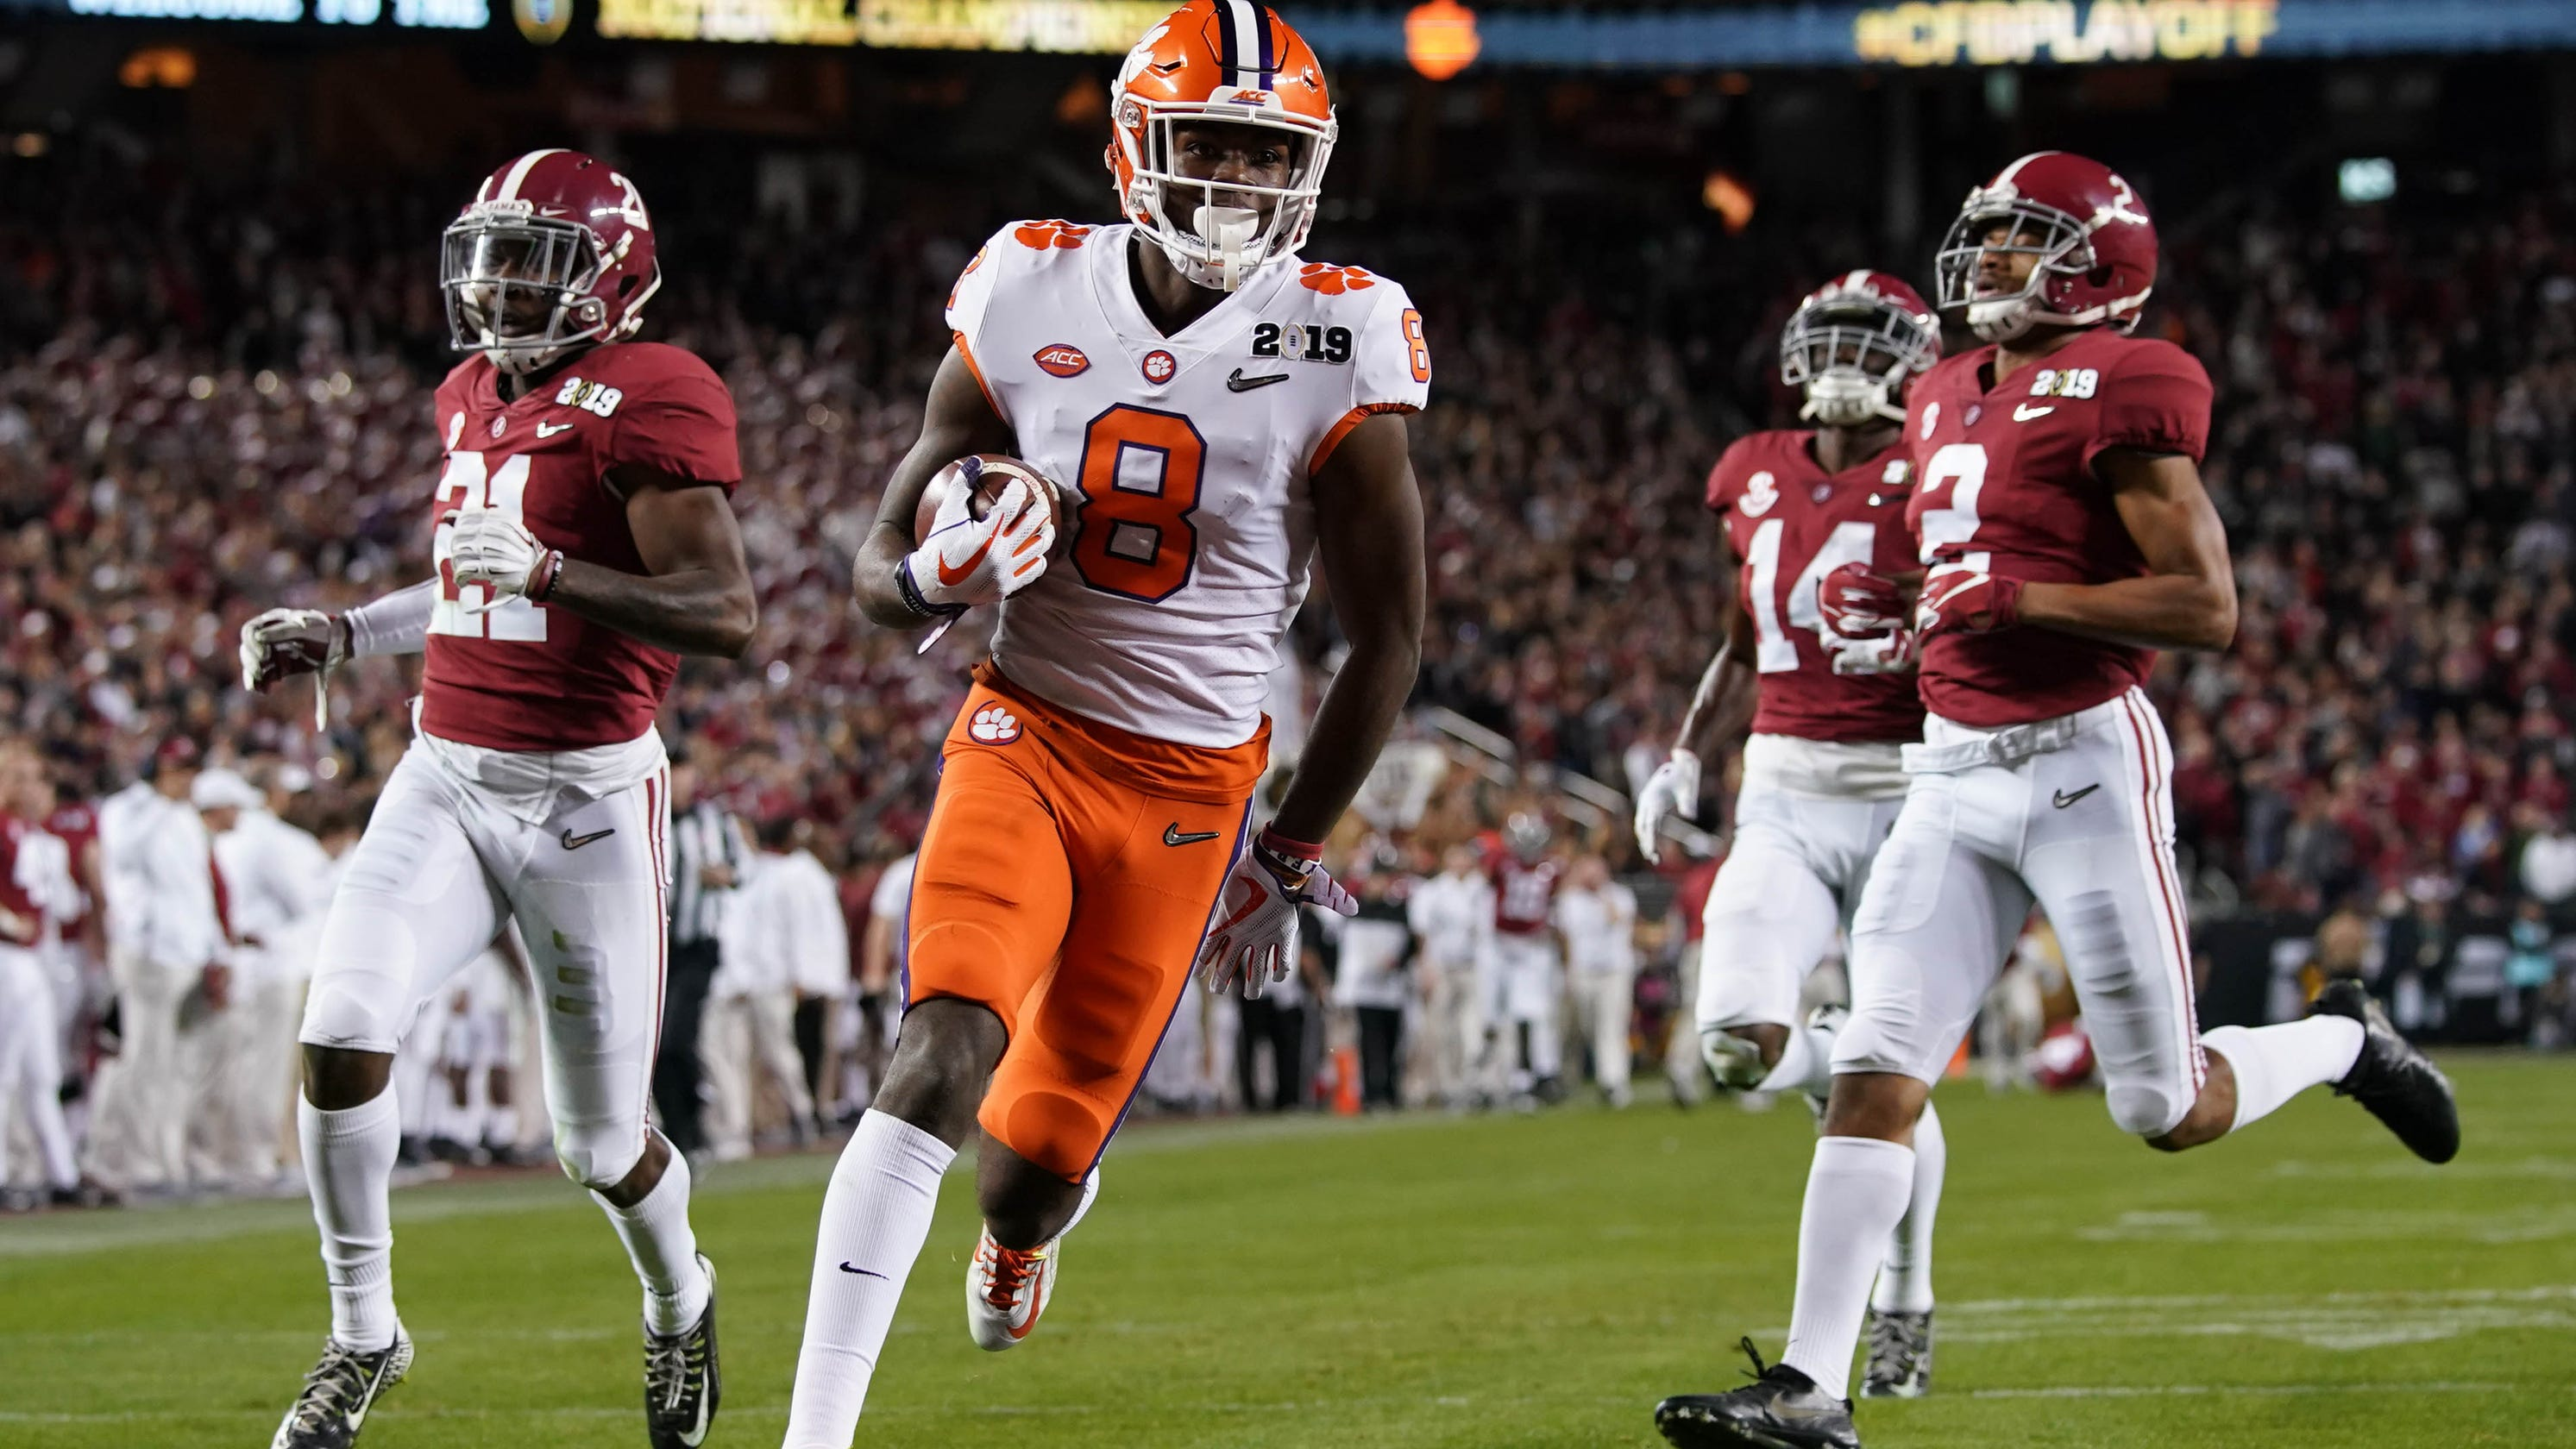 Alabama's defense gets steamrolled by Clemson in national championship game